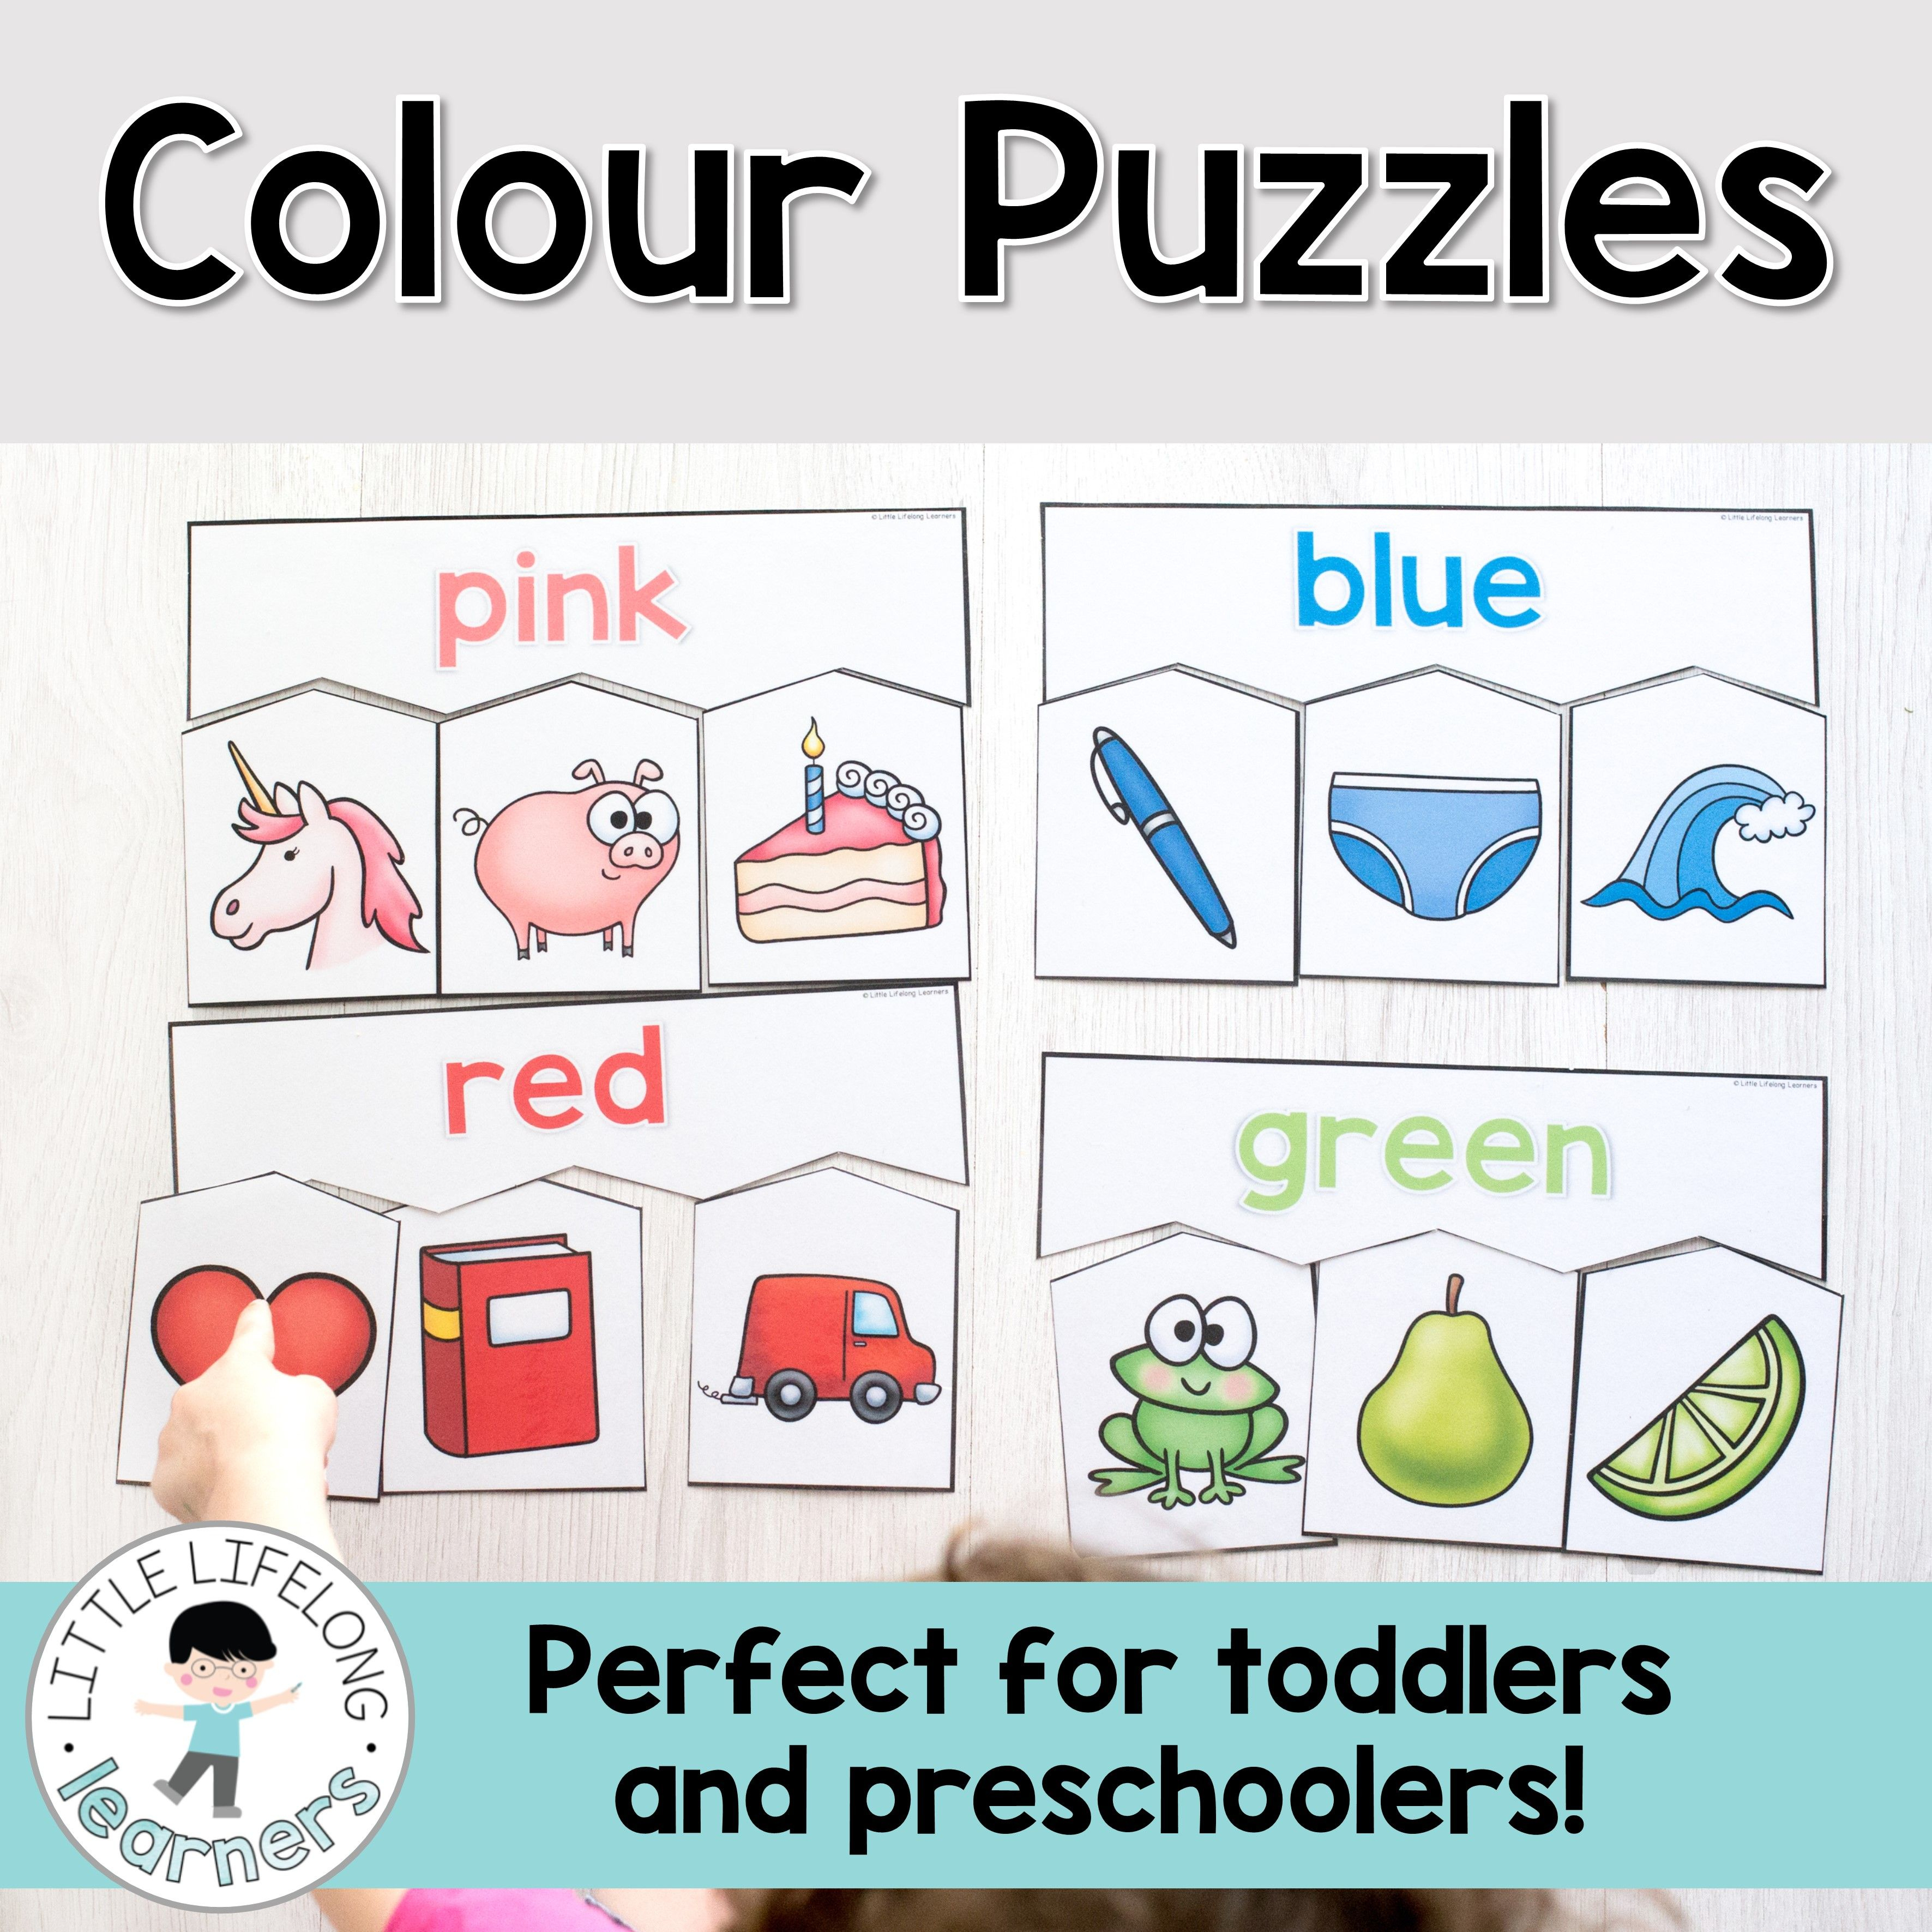 Colour Puzzles For Toddlers And Preschoolers | Toddler And - Printable Puzzles For 2 Year Olds